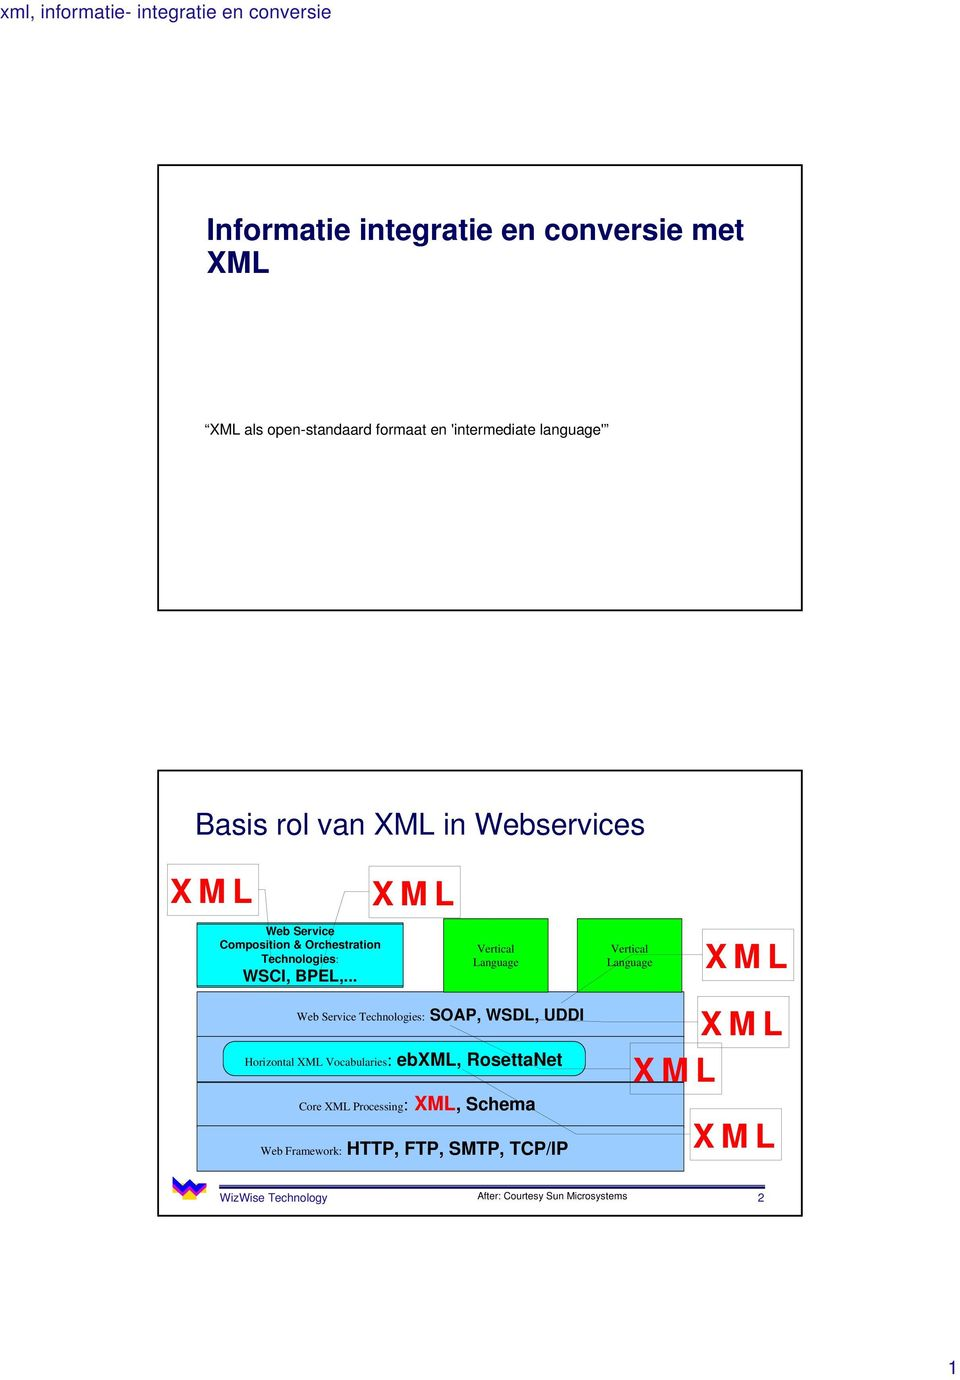 .. XML Vertical Language Web Service Technologies: SOAP, WSDL, UDDI Horizontal XML Vocabularies: ebxml, RosettaNet Core XML